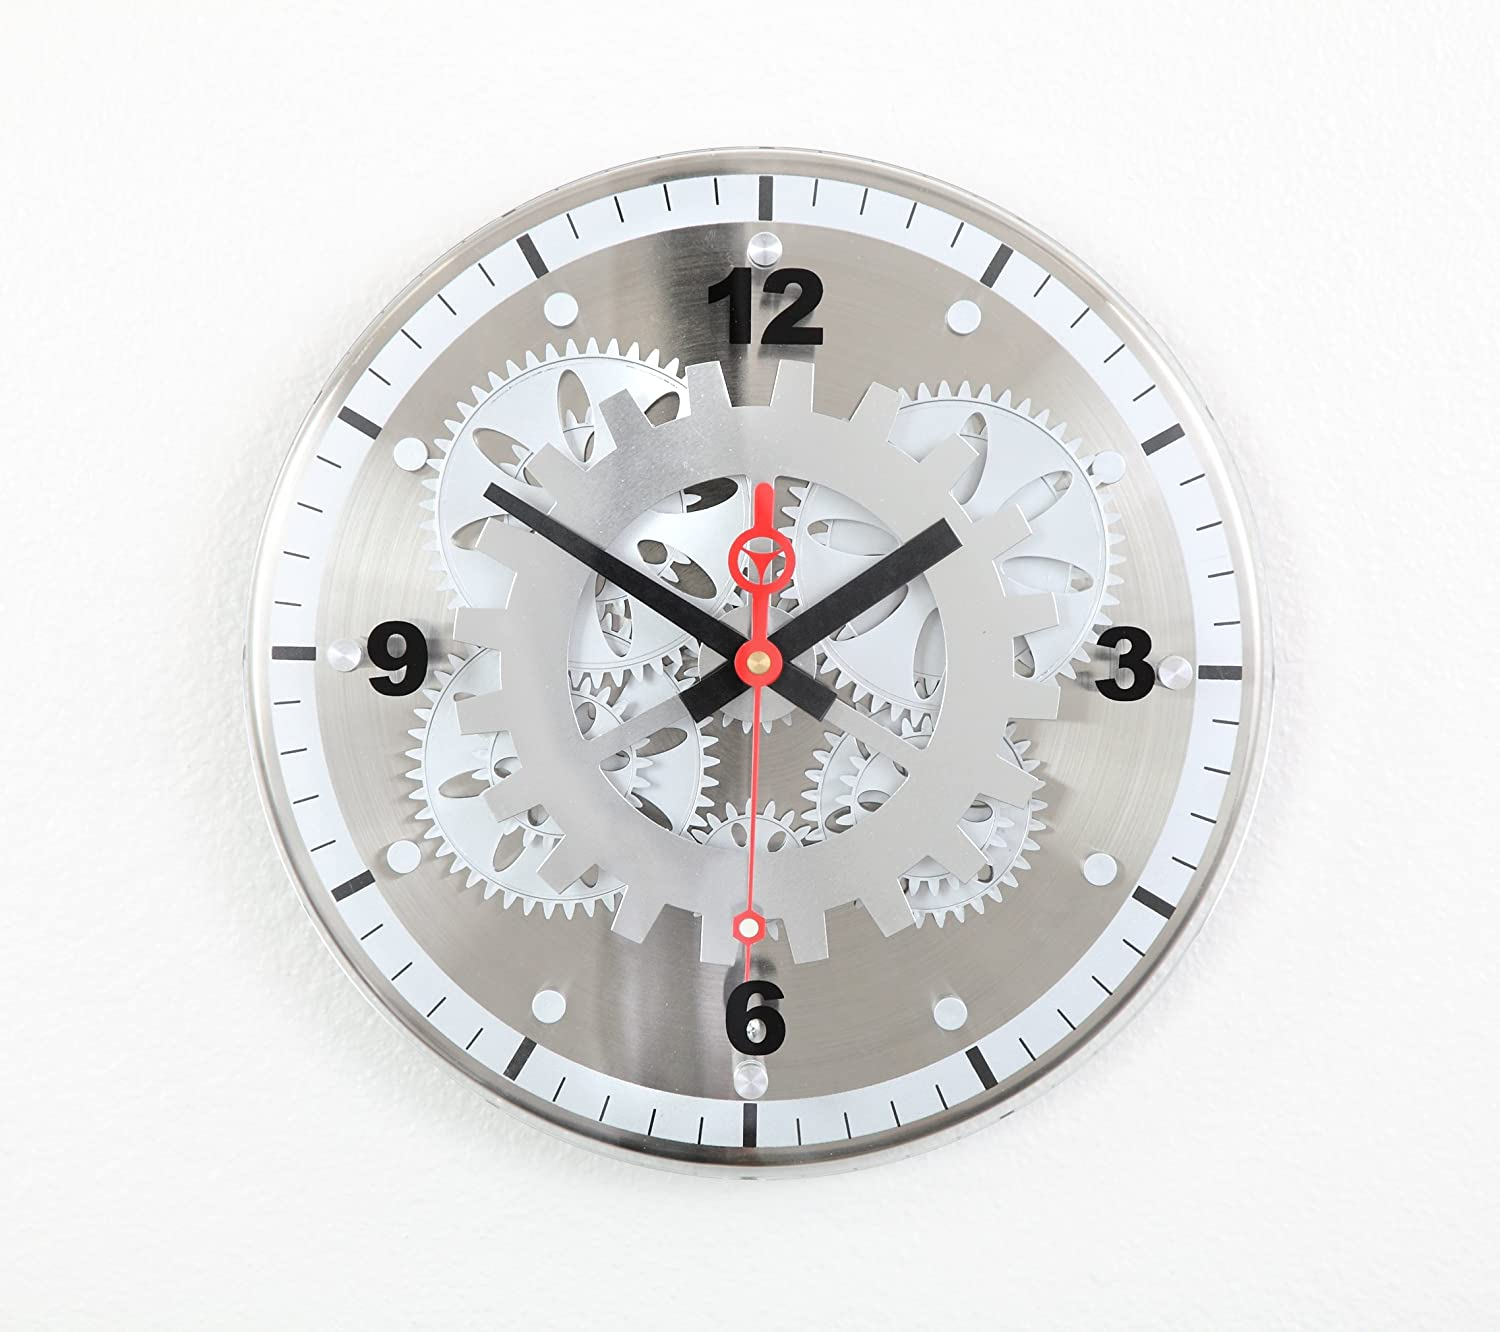 10 best modern wall clocks you should consider for your decor 10 maples 12 inch moving gear modern wall clock glass cover amipublicfo Gallery